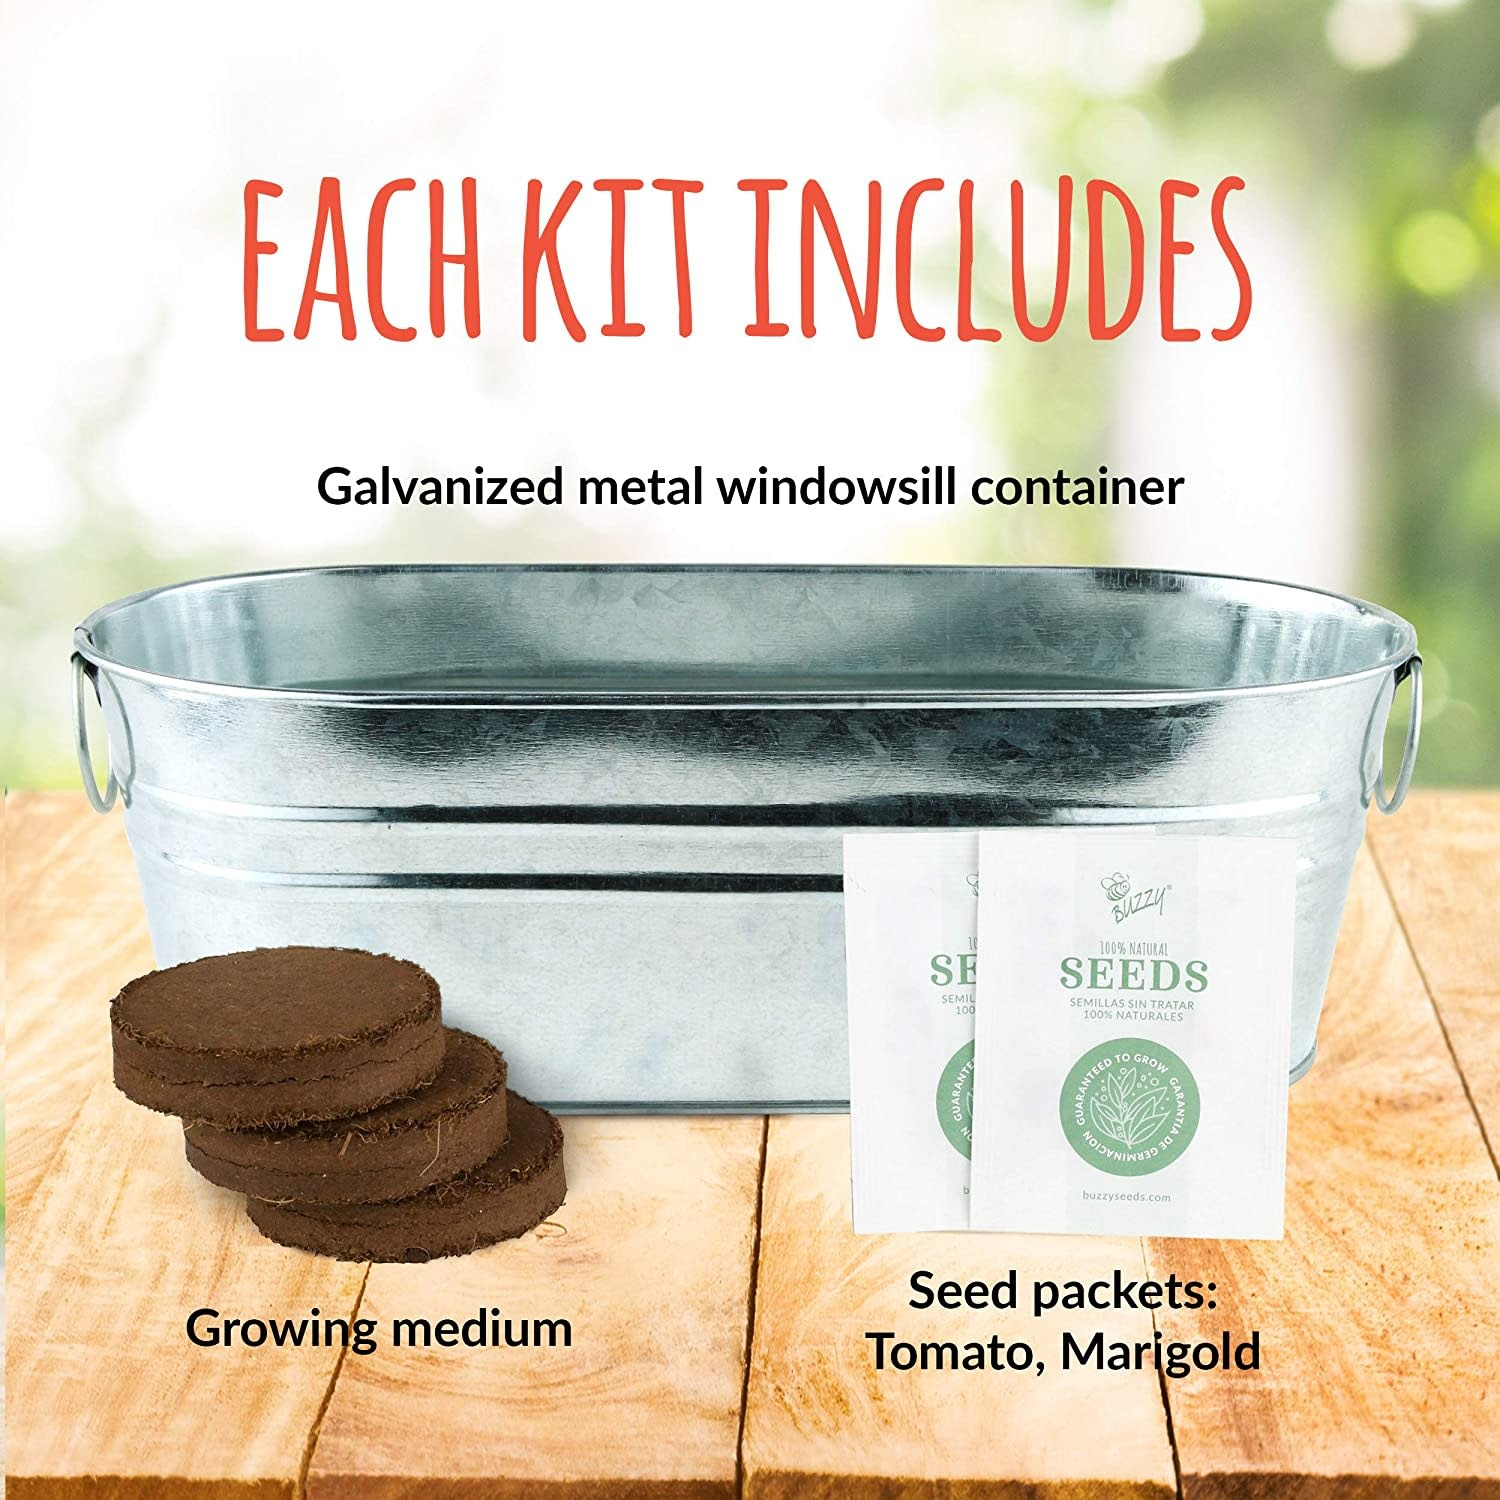 My First Garden Windowsill Kit by Buzzy